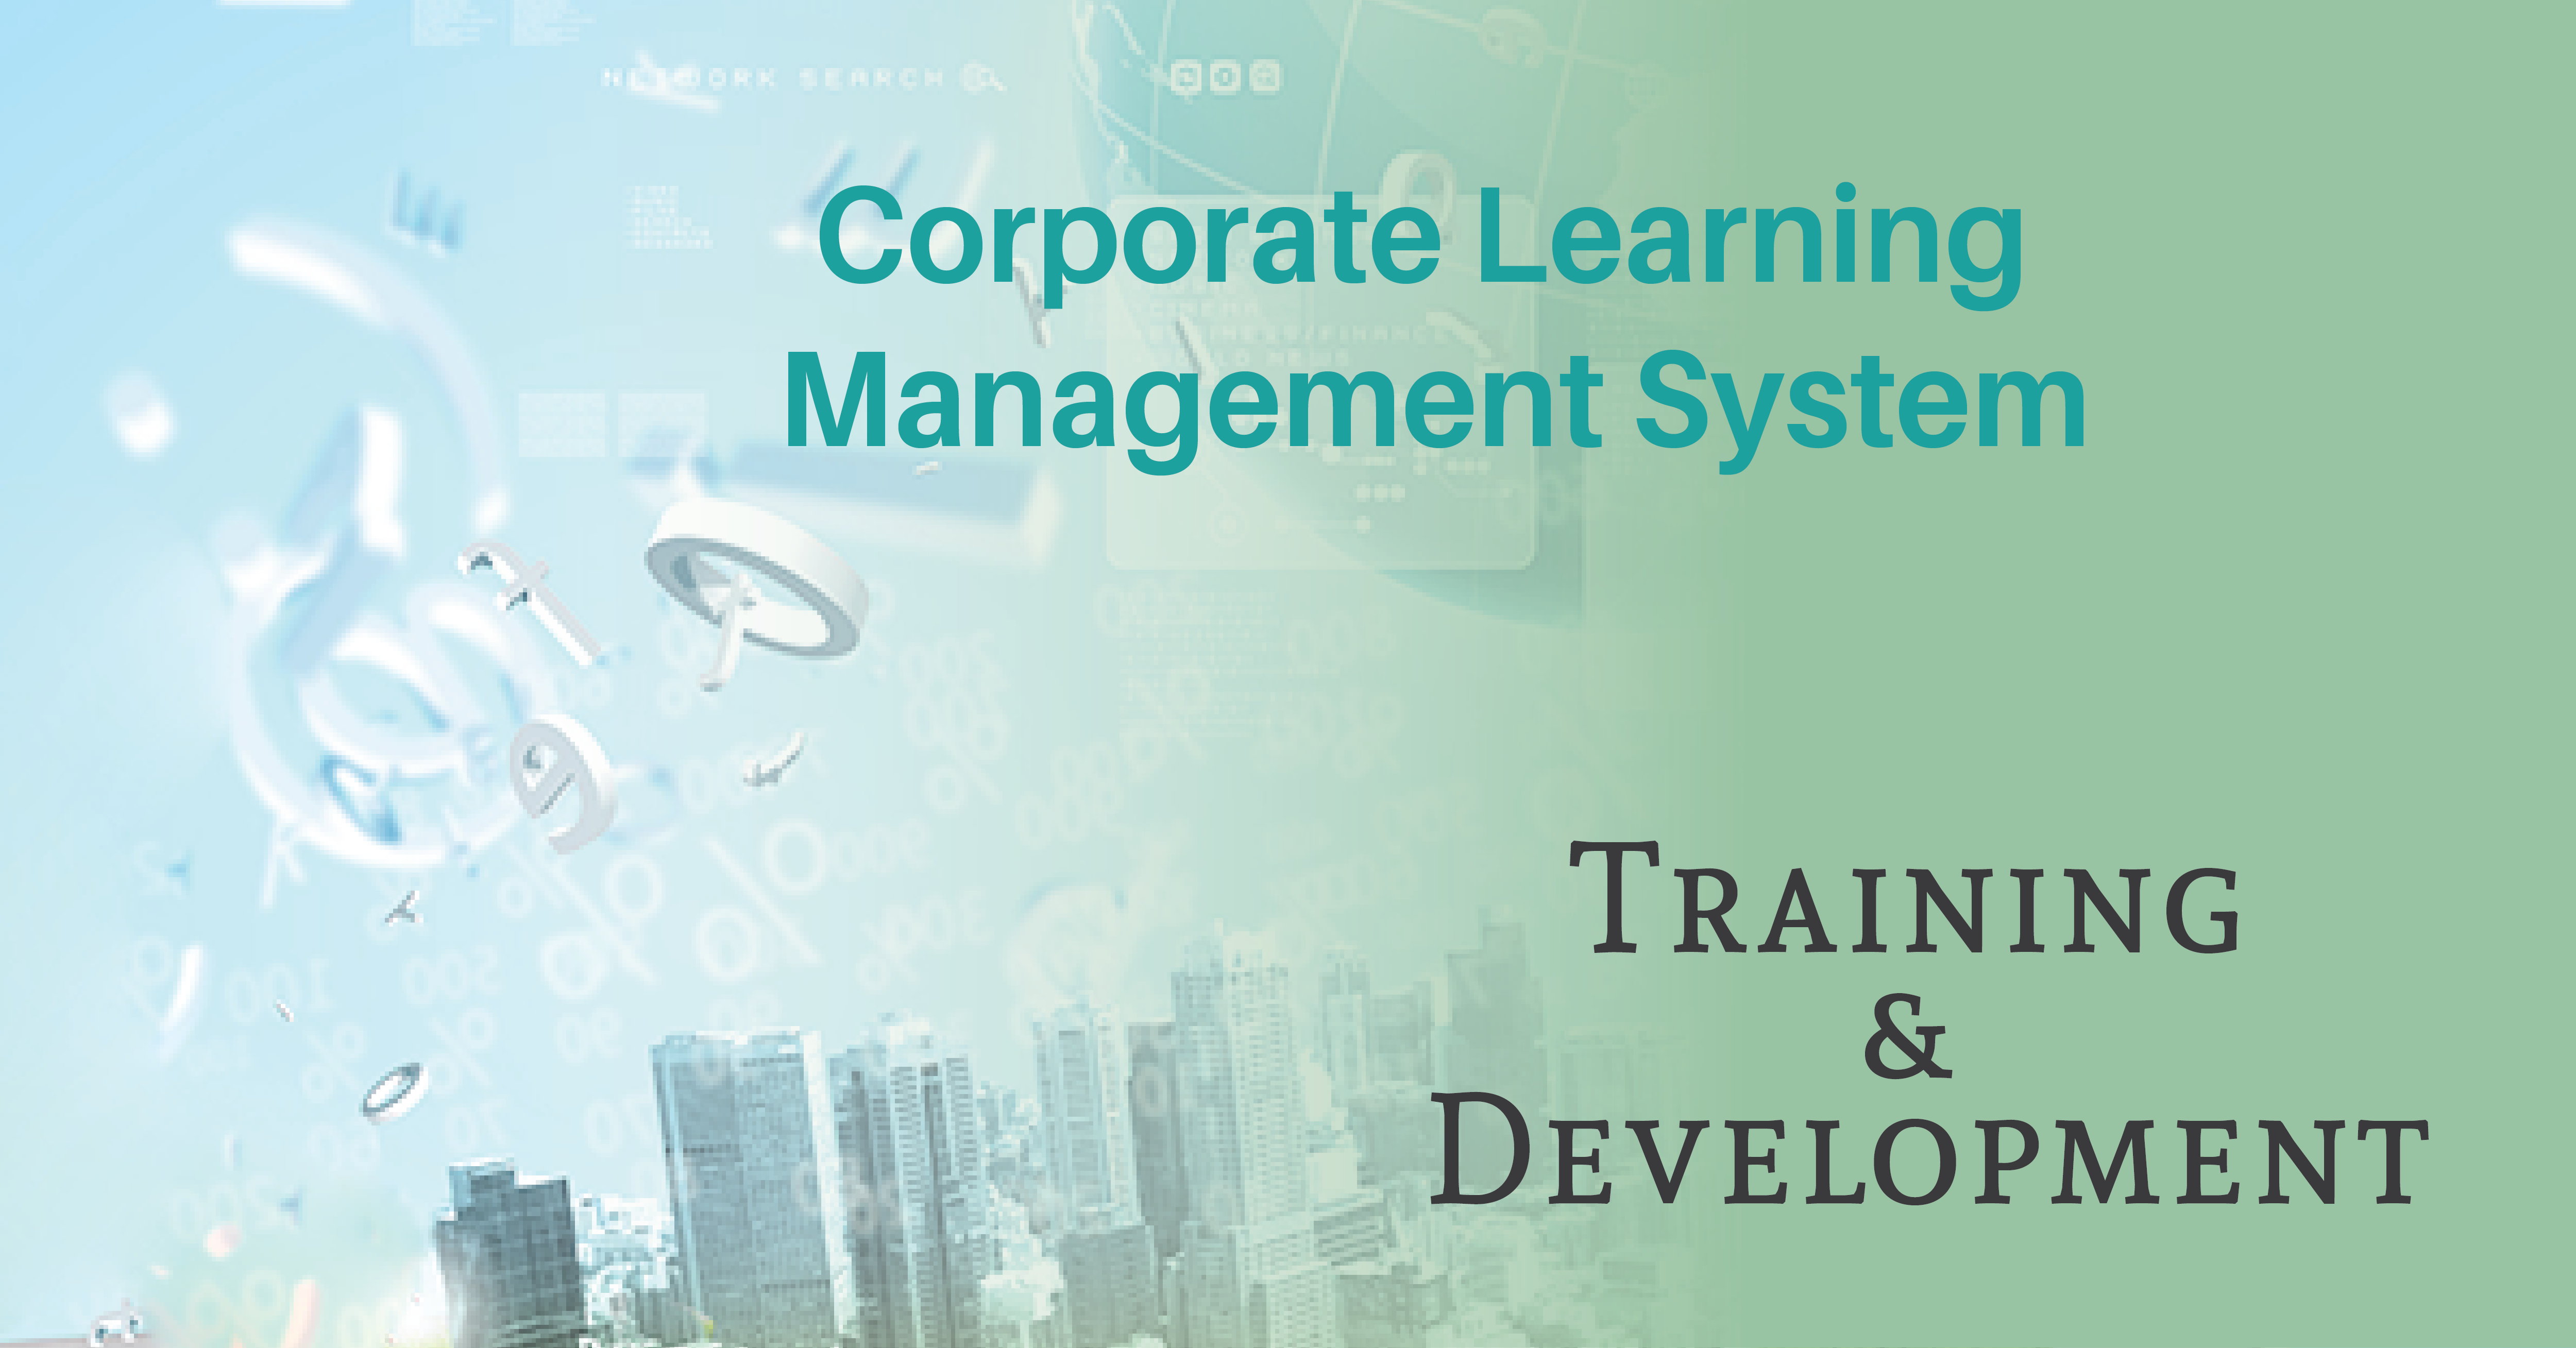 Advantages to use an elearning (LMS) for Corporate Training in 2020